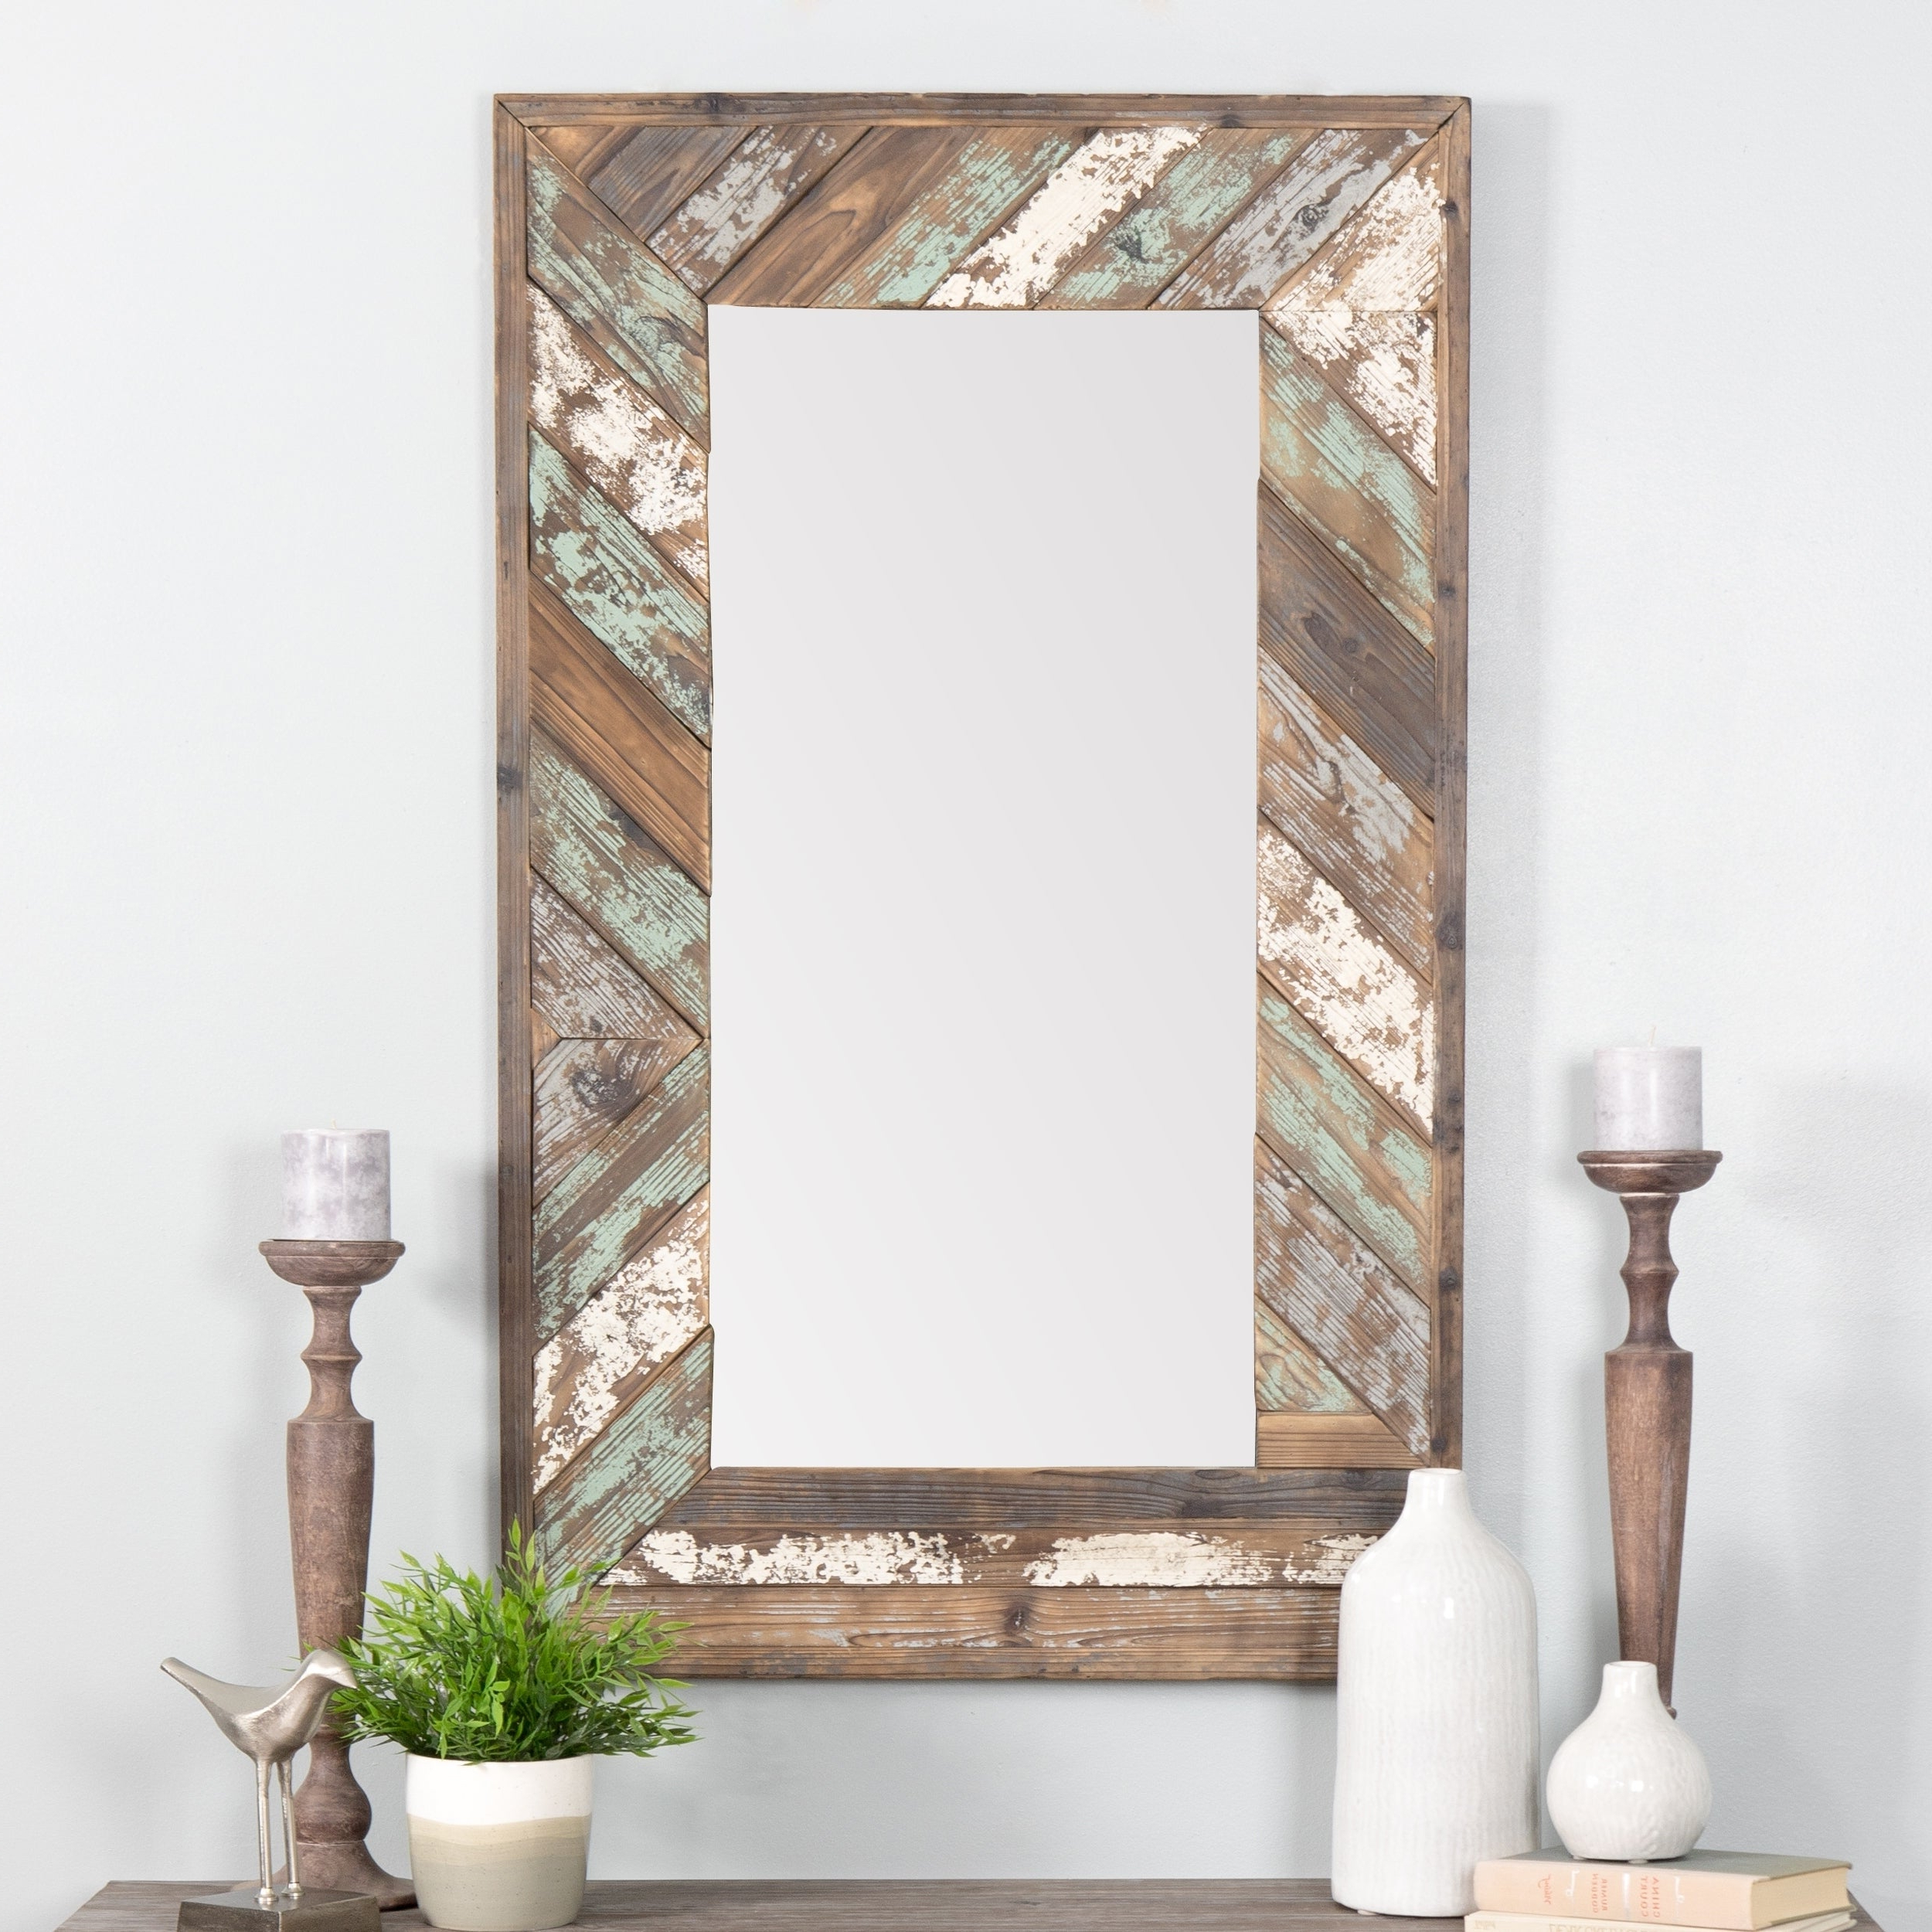 Trendy Brogan Distressed Wood Slat Wall Mirror – Multi Within Distressed Wood Wall Mirrors (Gallery 2 of 20)